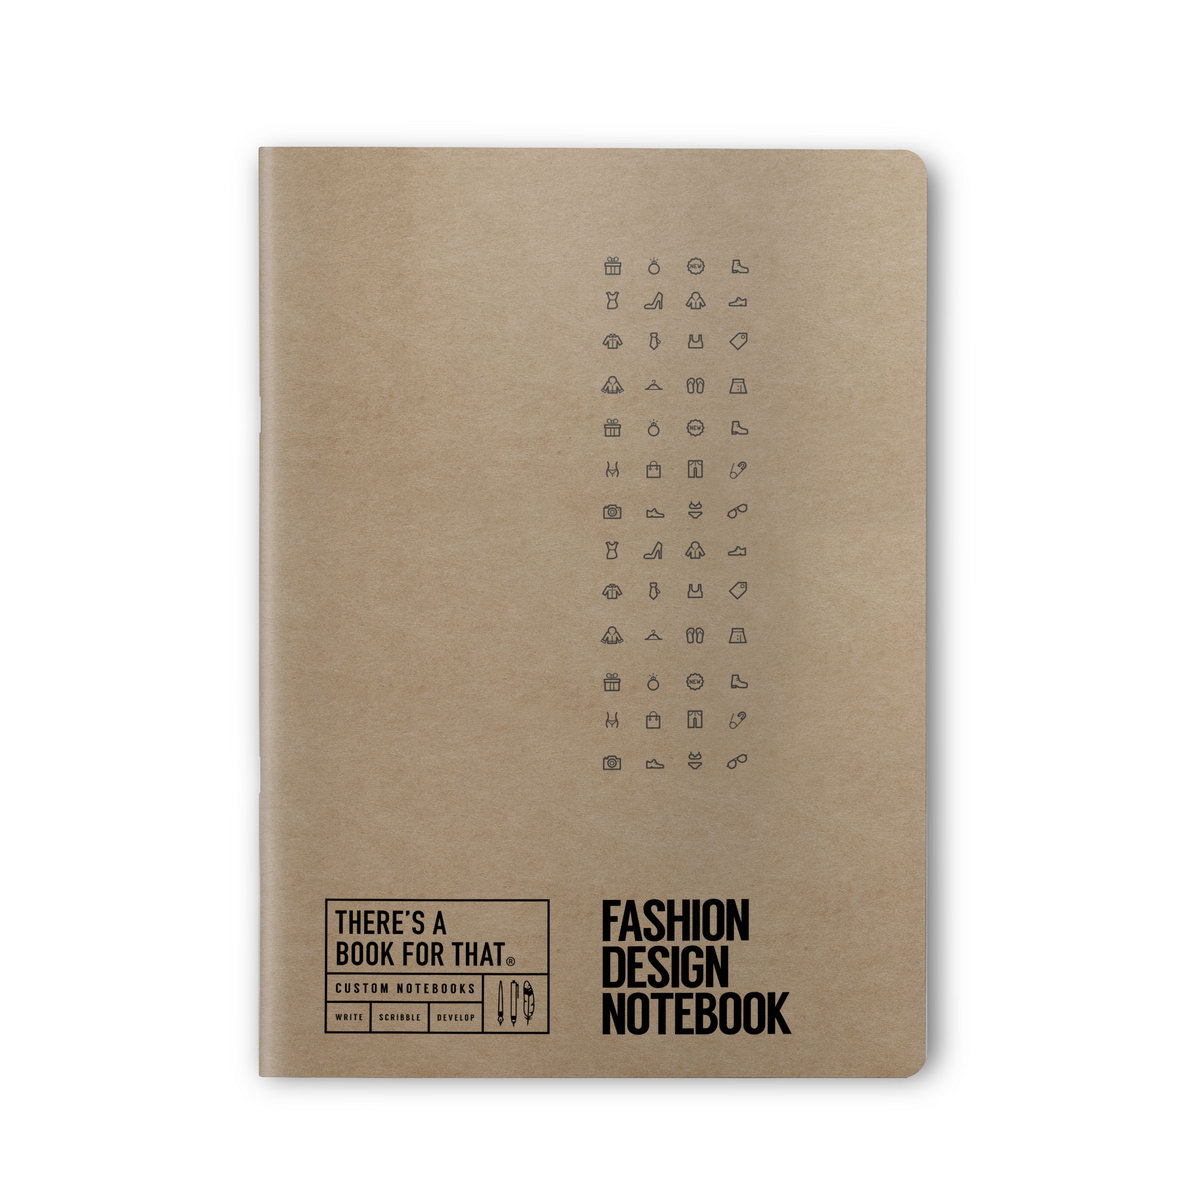 B-112_Fashion_Design-Notebook_Stationery_TopCover